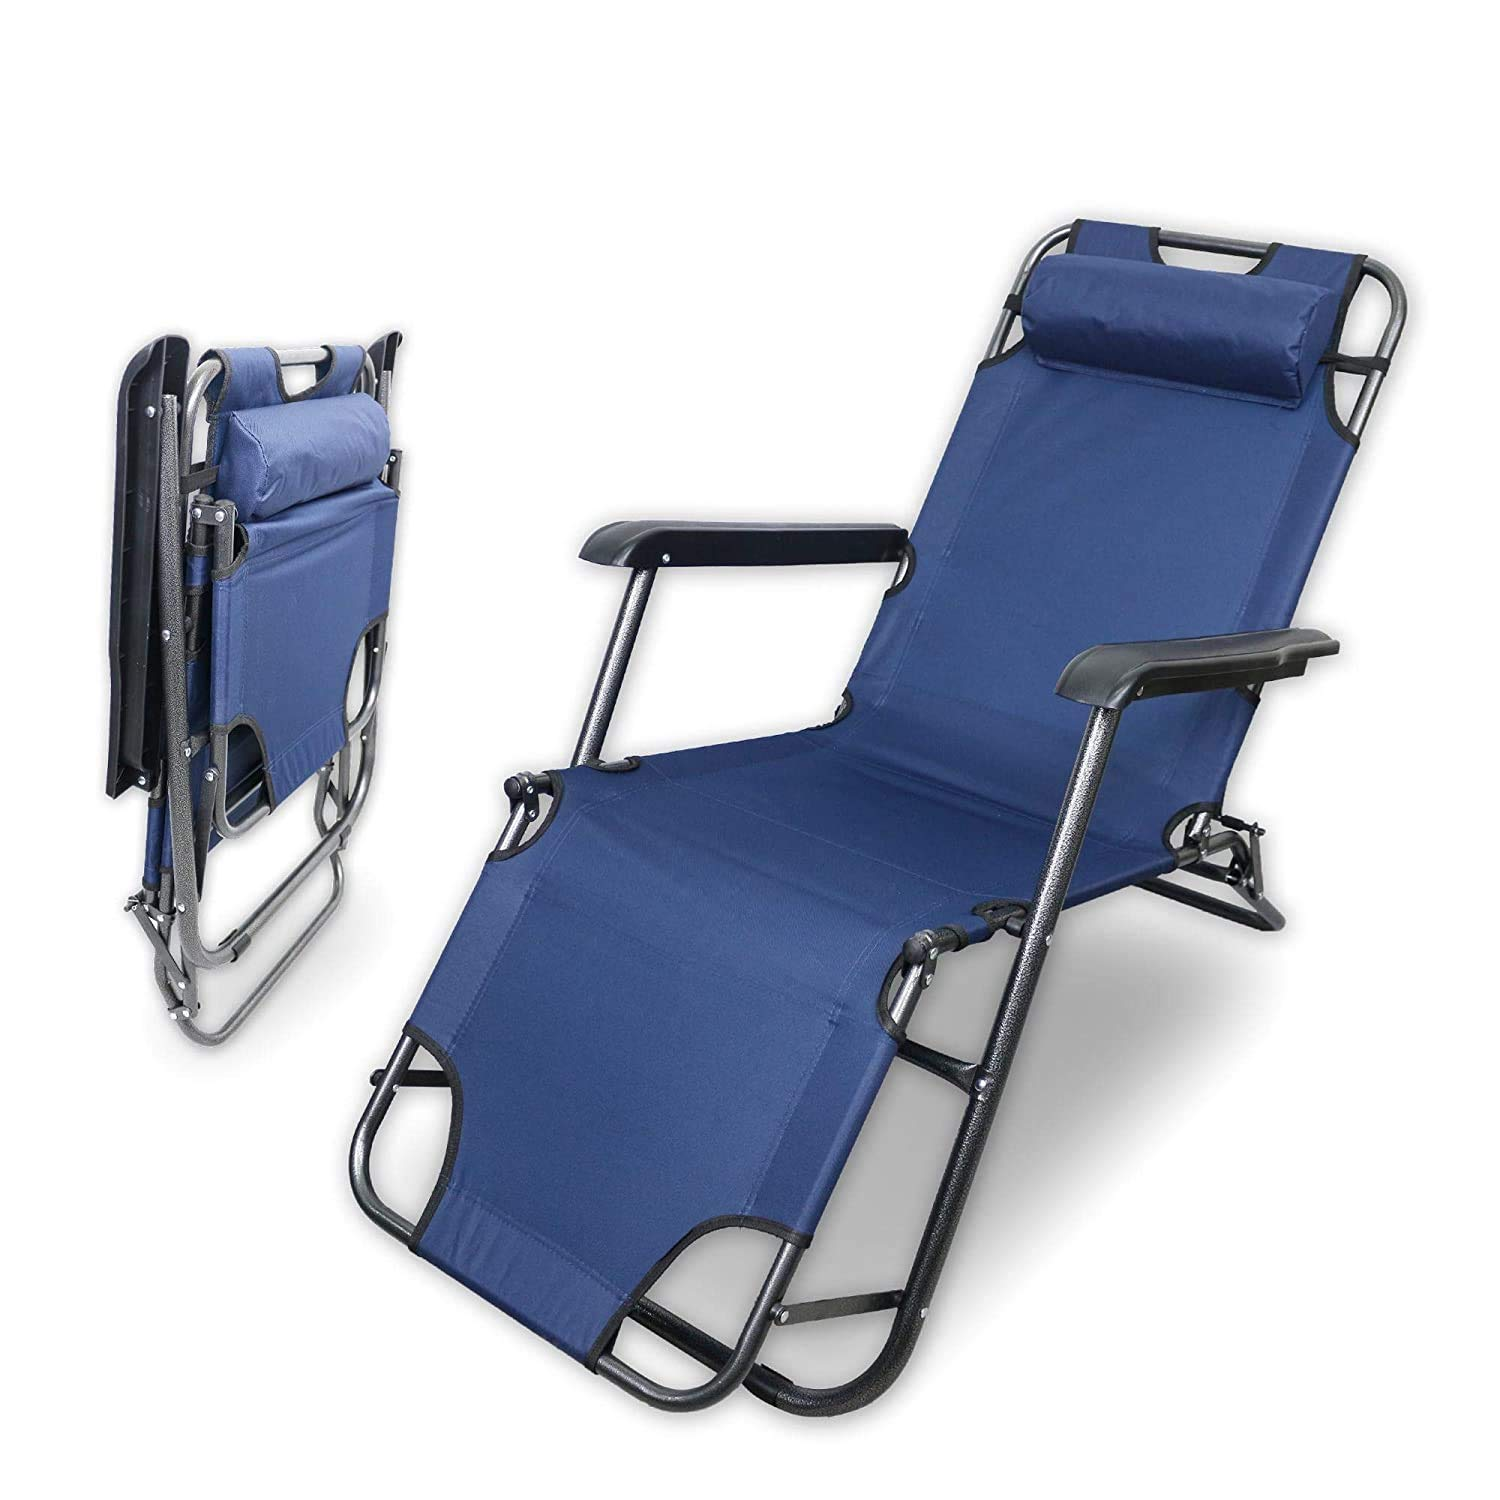 Sajani Folding Beach Chair Outdoor Sun Loungers Folding Recliner Portable Rear Fishing Chair Camping Wild Beach Stool Rest Bed